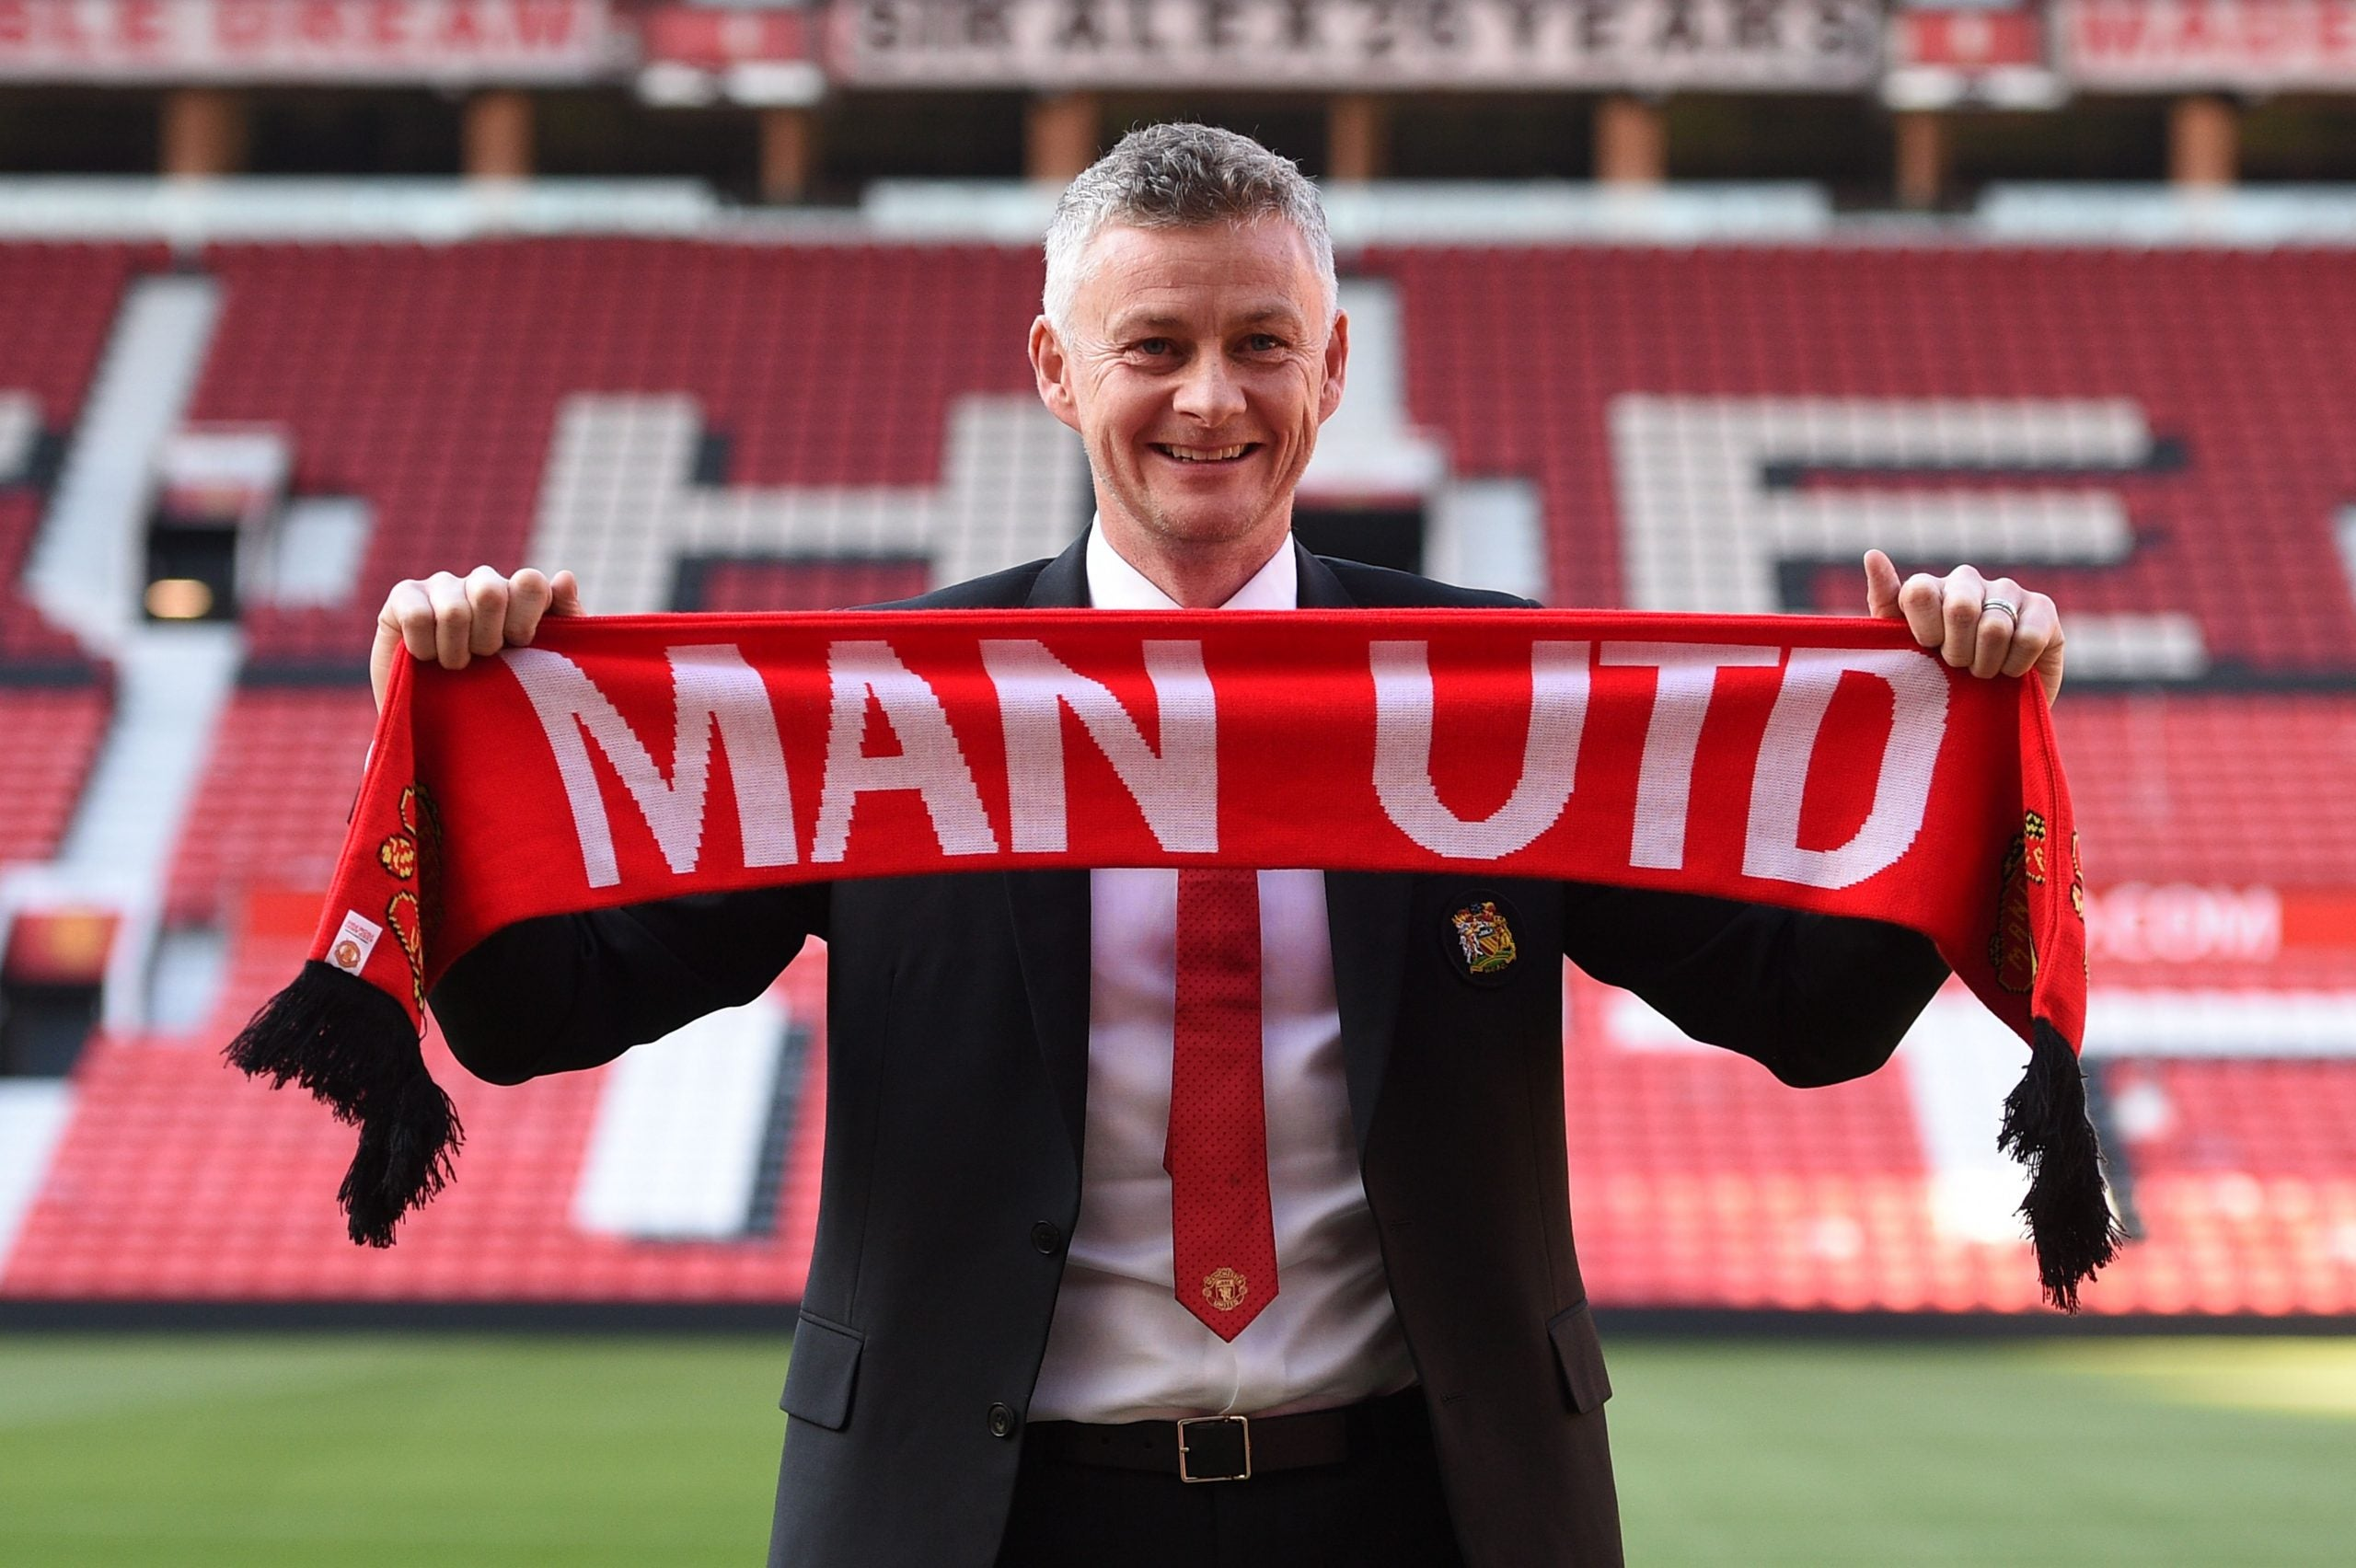 In hiring Ole Gunnar Solskjaer, Manchester United are experimenting with risk and romanticism